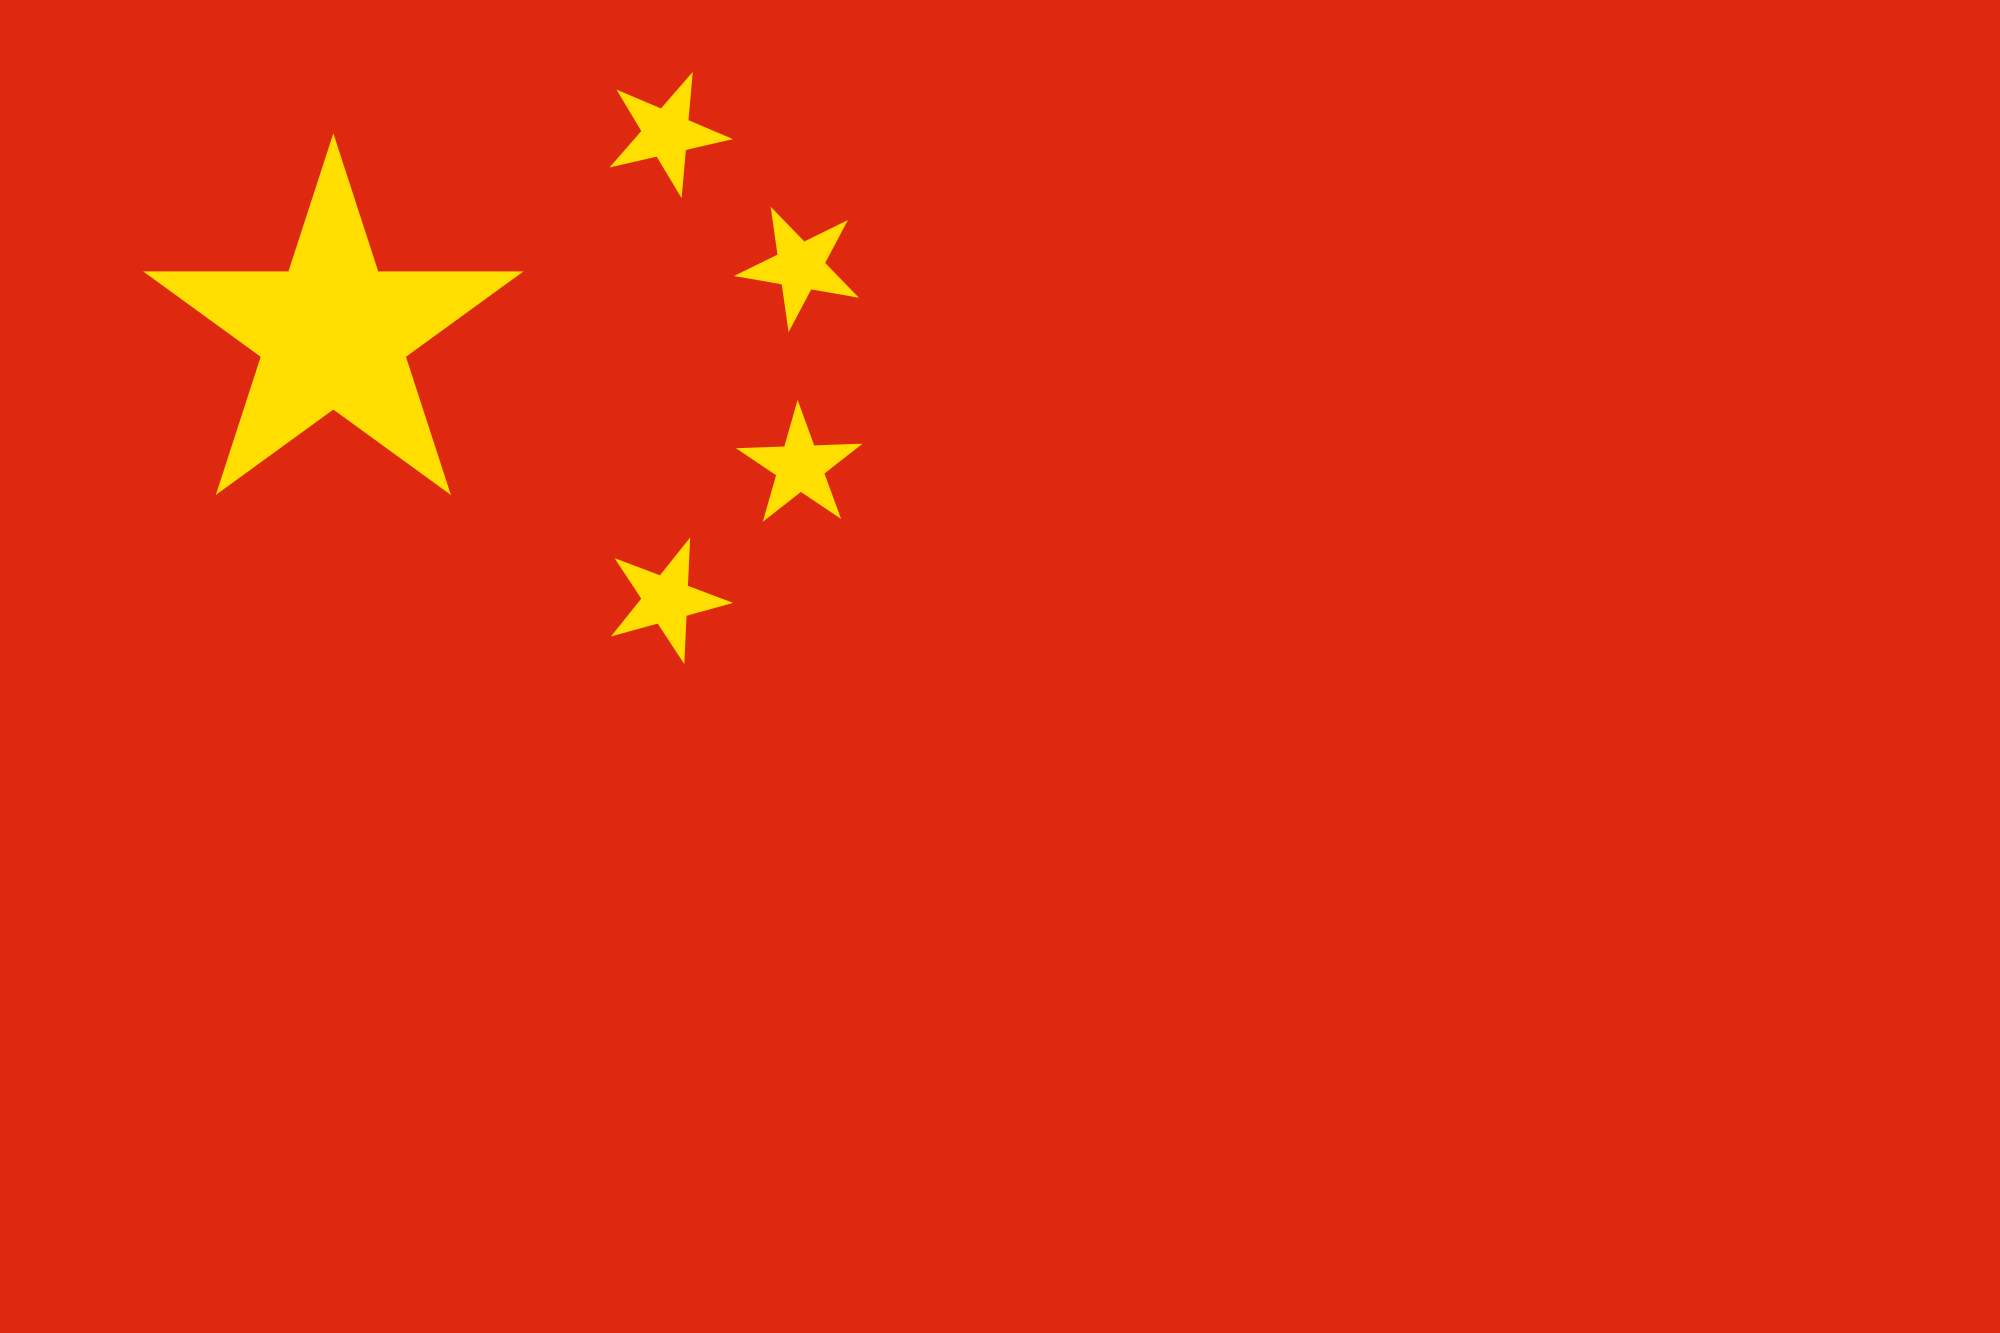 Flag_of_the_People's_Republic_of_China_svg